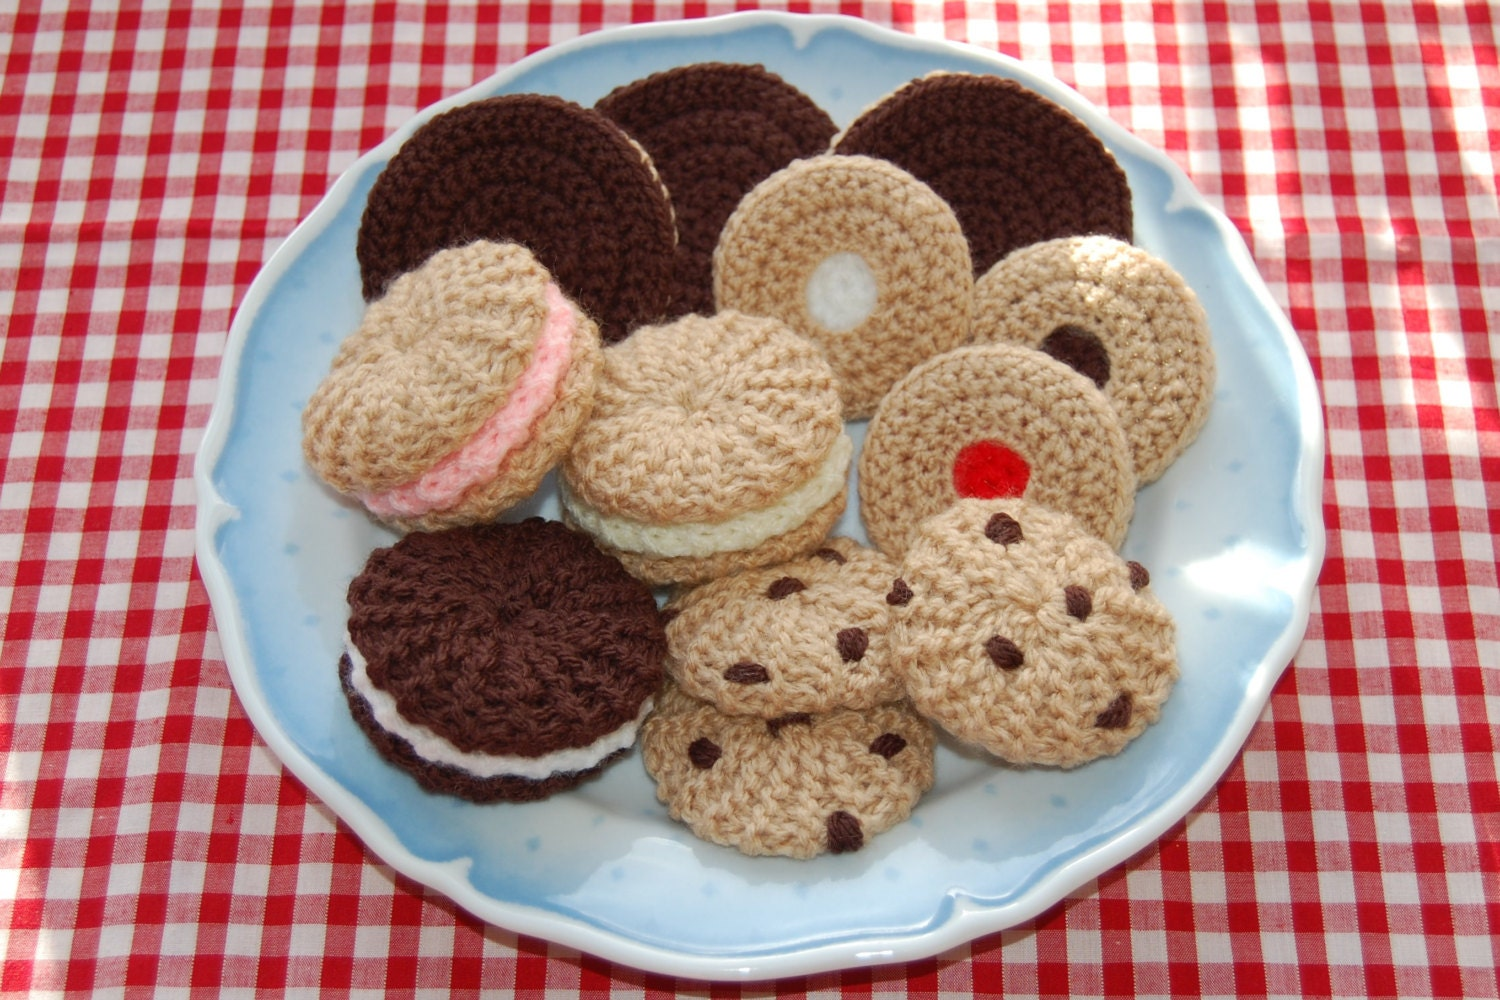 Knitting Crochet Pattern for a Selection of Biscuits